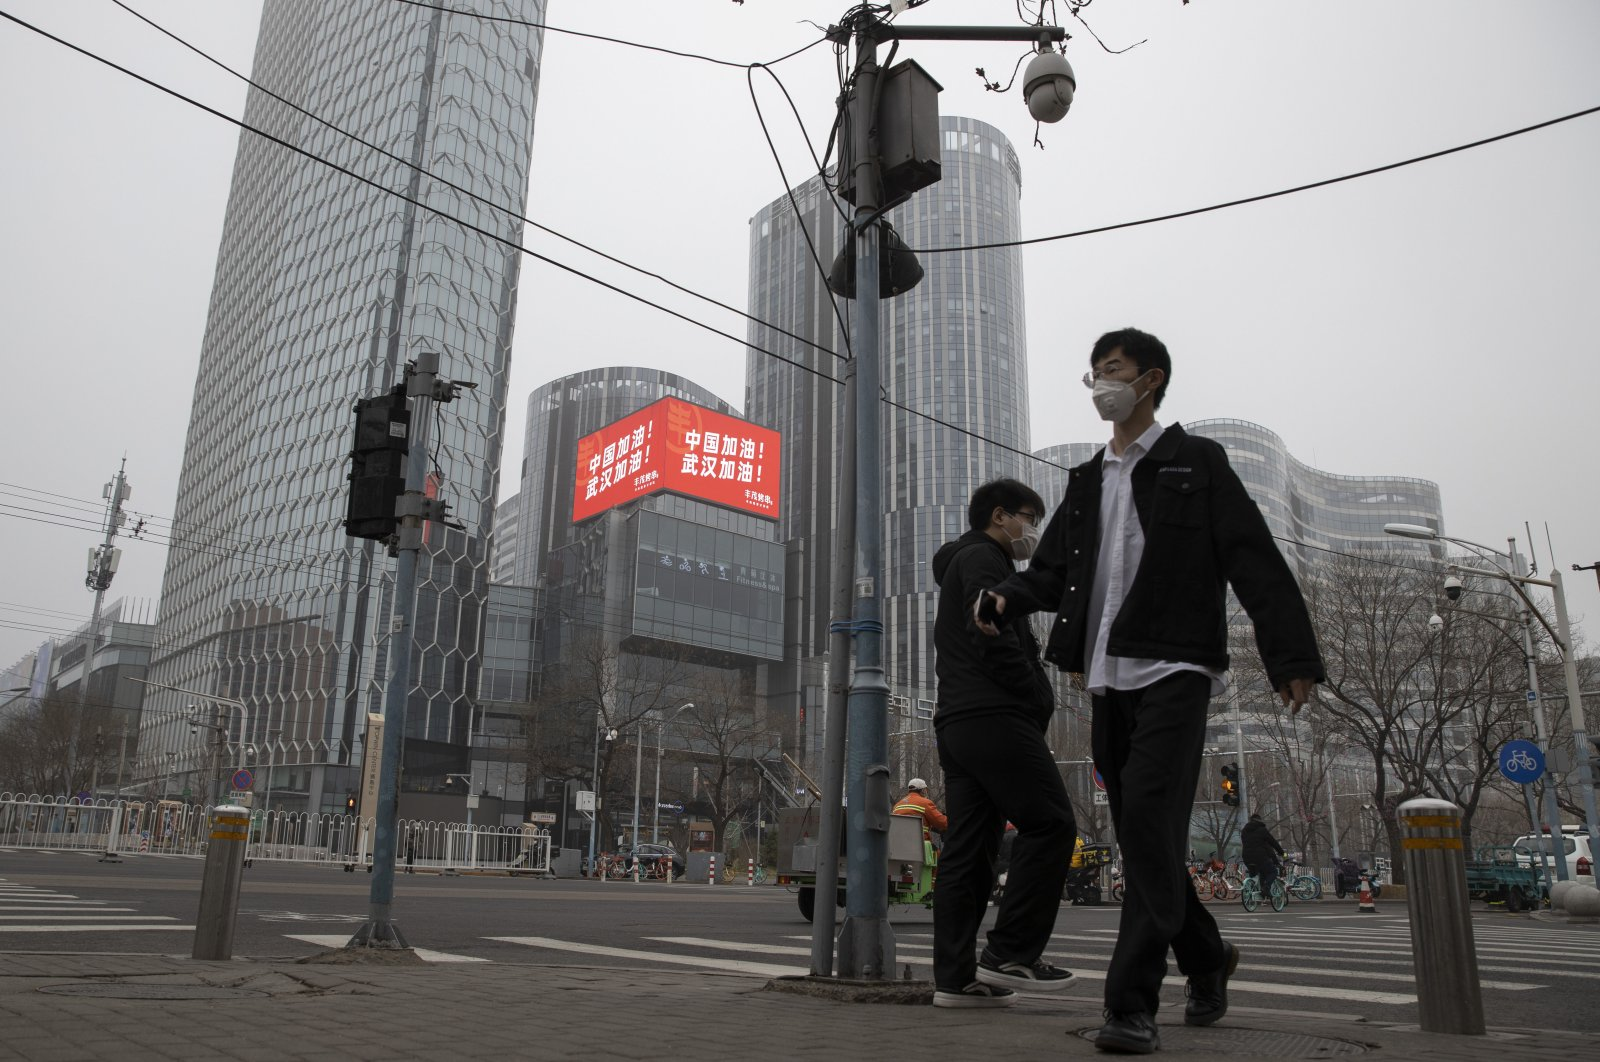 """Residents walk past a retail and office district with a screen showing propaganda which reads """"Go China! Go Wuhan"""" as businesses slowly restart in Beijing on Sunday, March 8, 2020. (AP Photo)"""